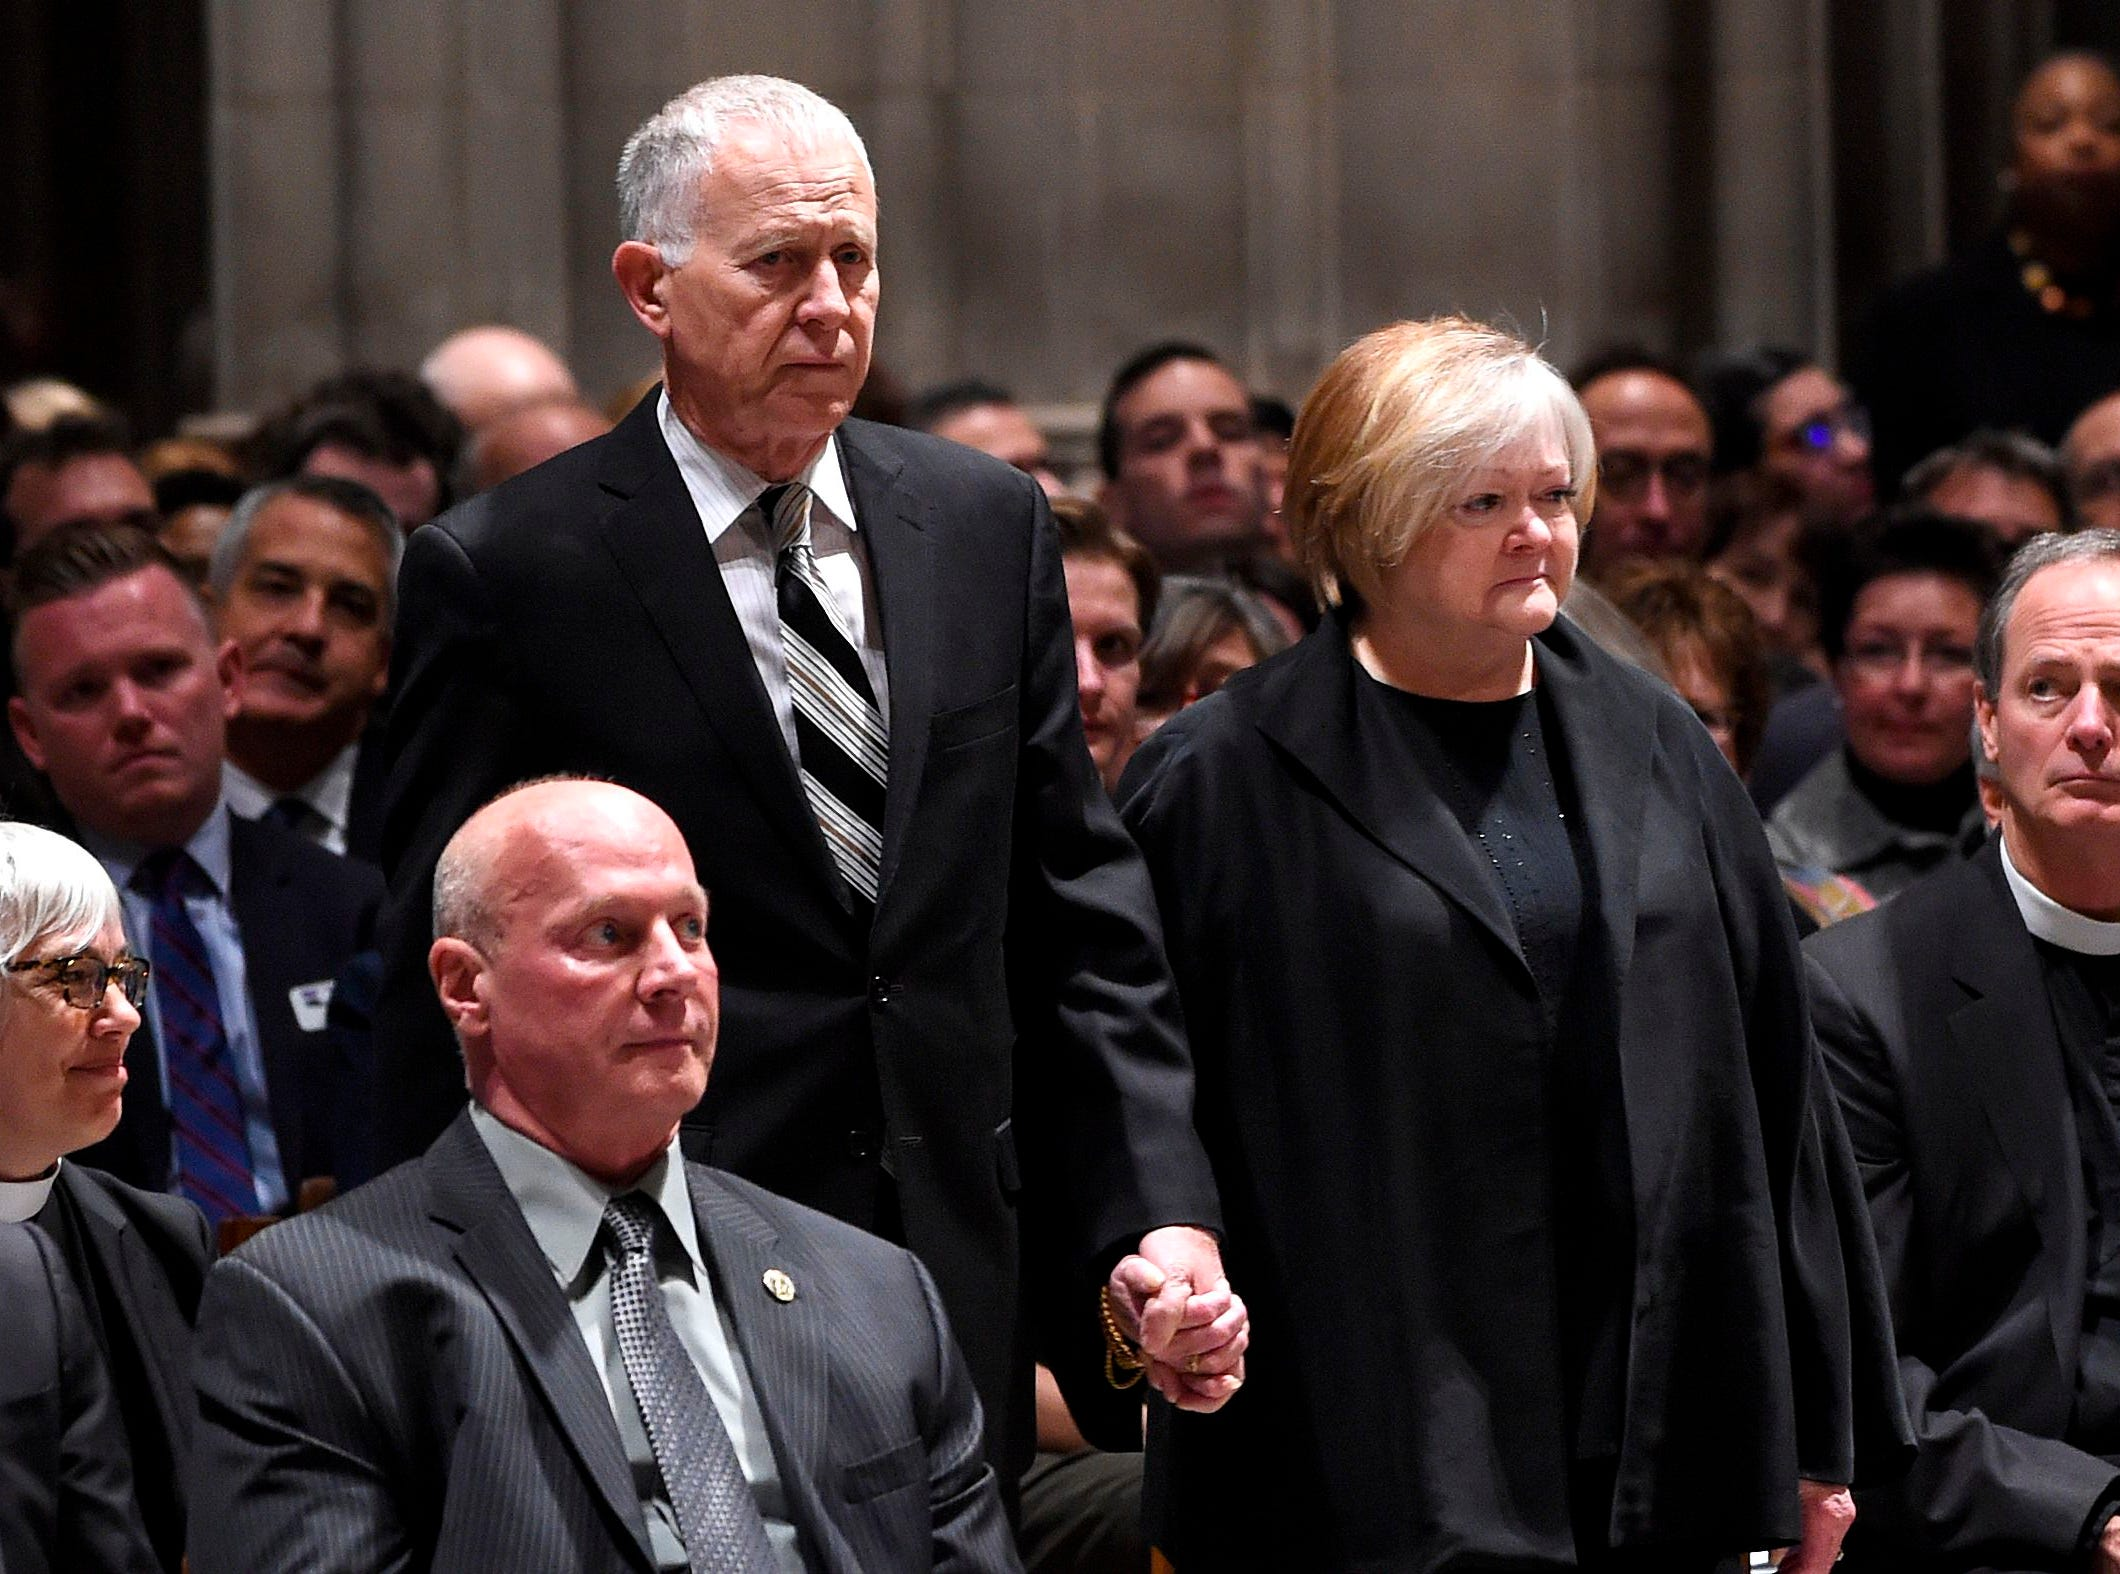 'Welcome home': Matthew Shepard interred at Washington National Cathedral